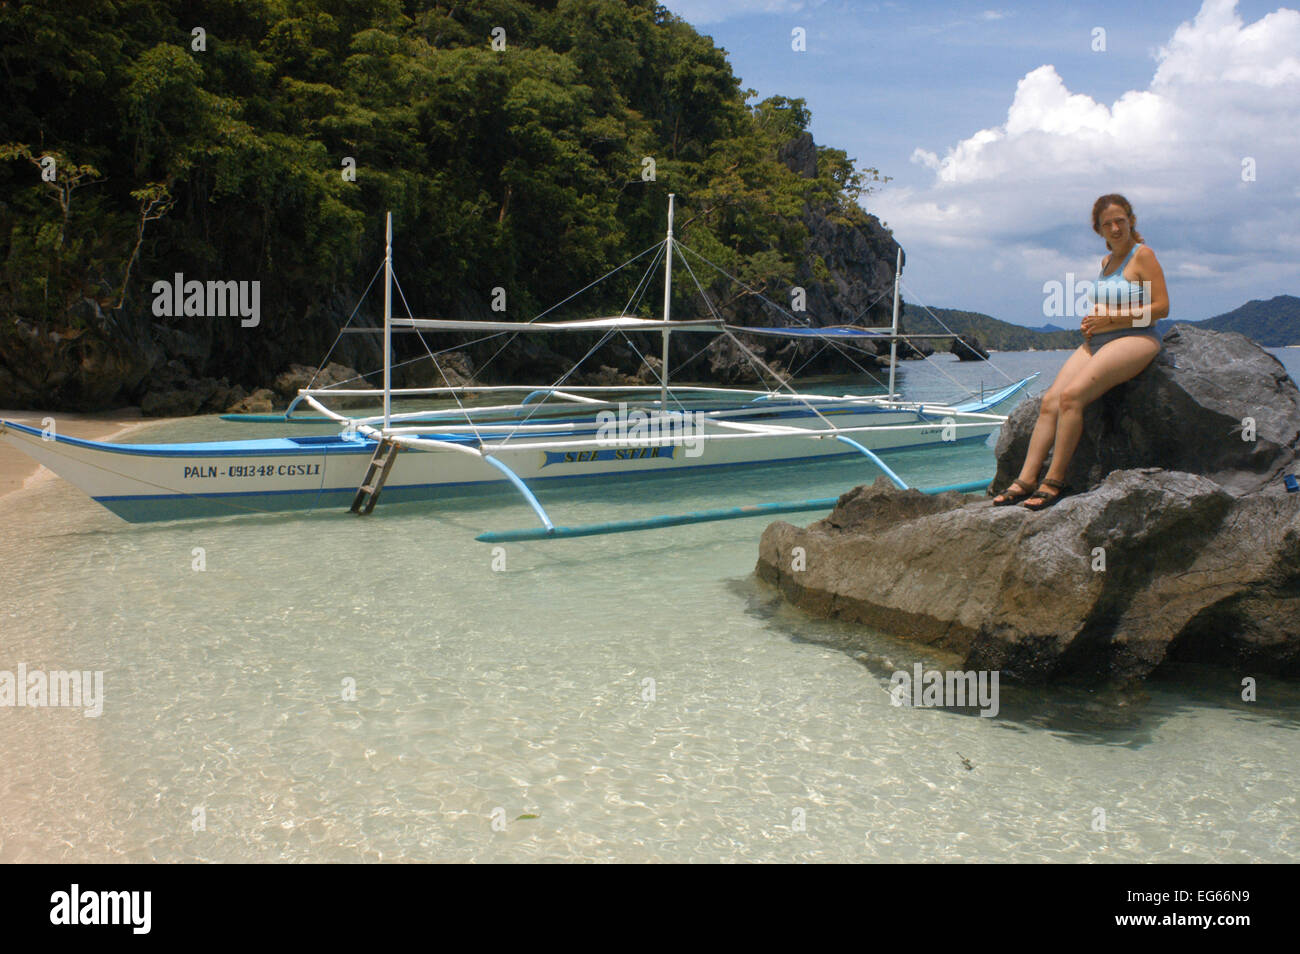 el nido women Lagun in el nido, palawan tells the story of the world's most beautiful island through design elements it is a story of nesting, of finding identity and building a home away from home.